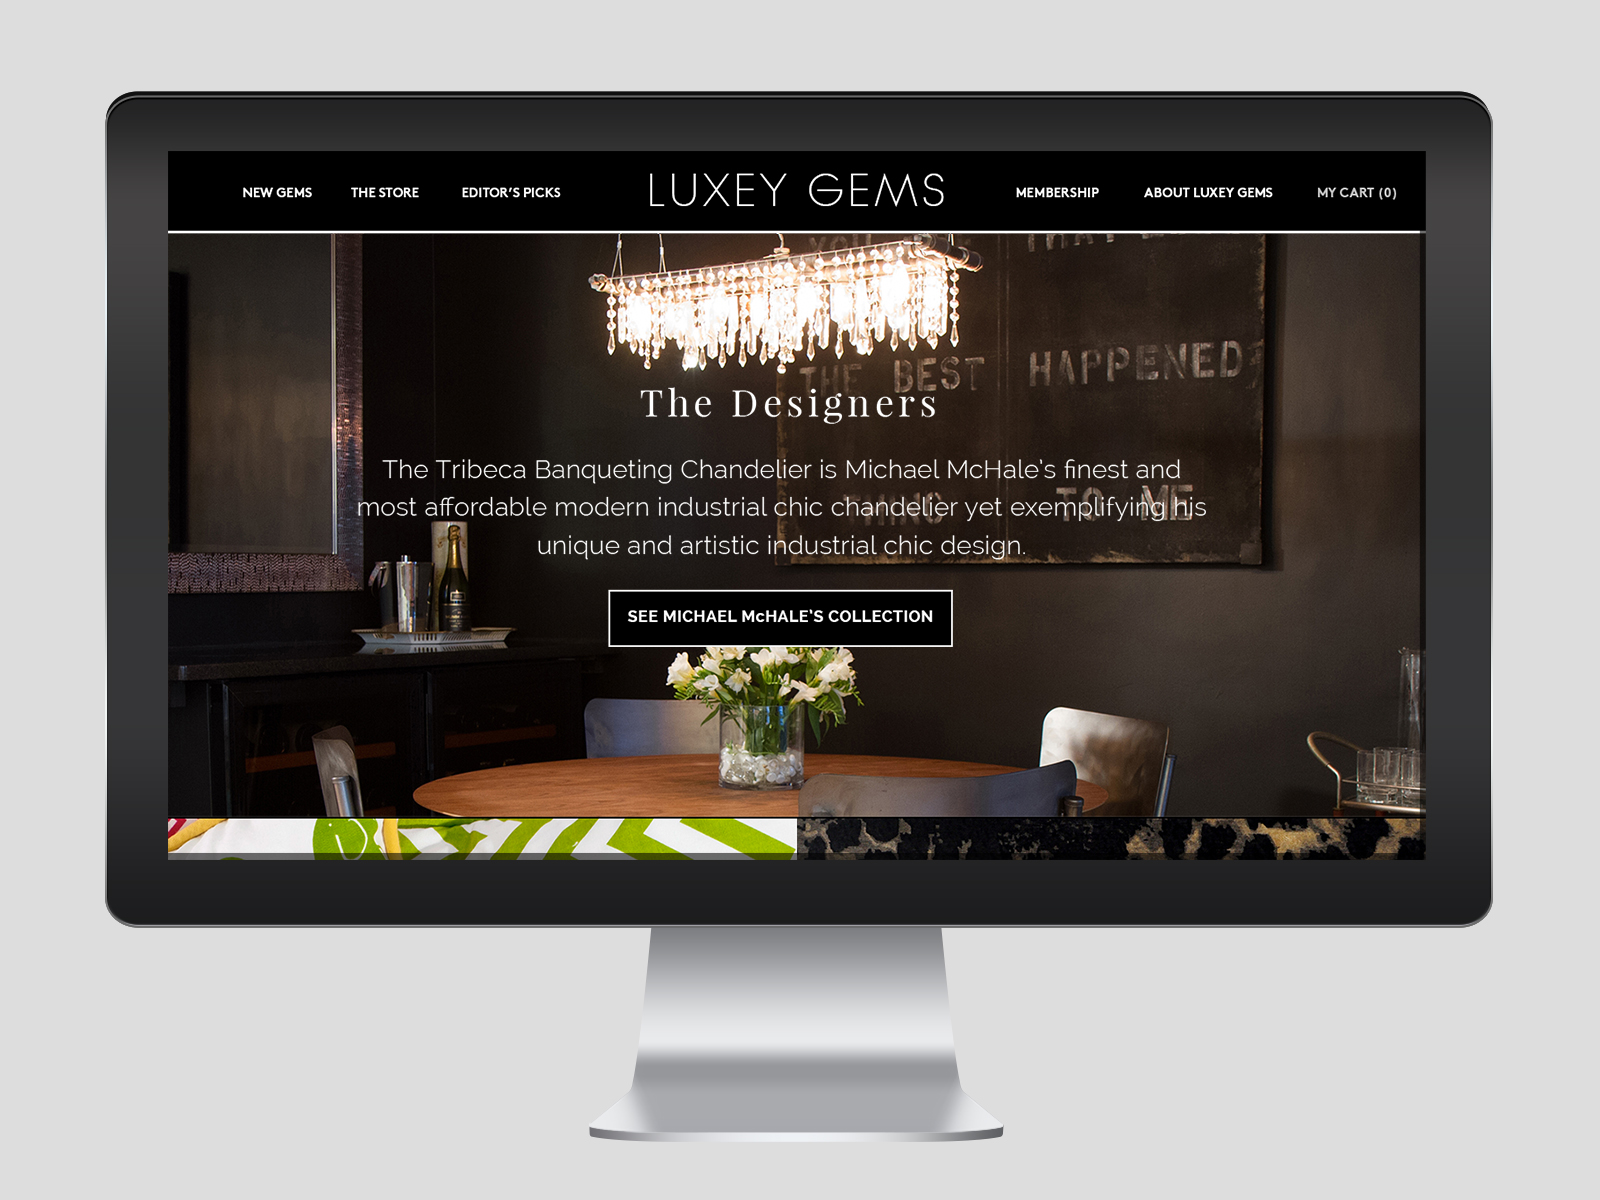 LUXEY GEMS ECOMMERCE WEBSITE